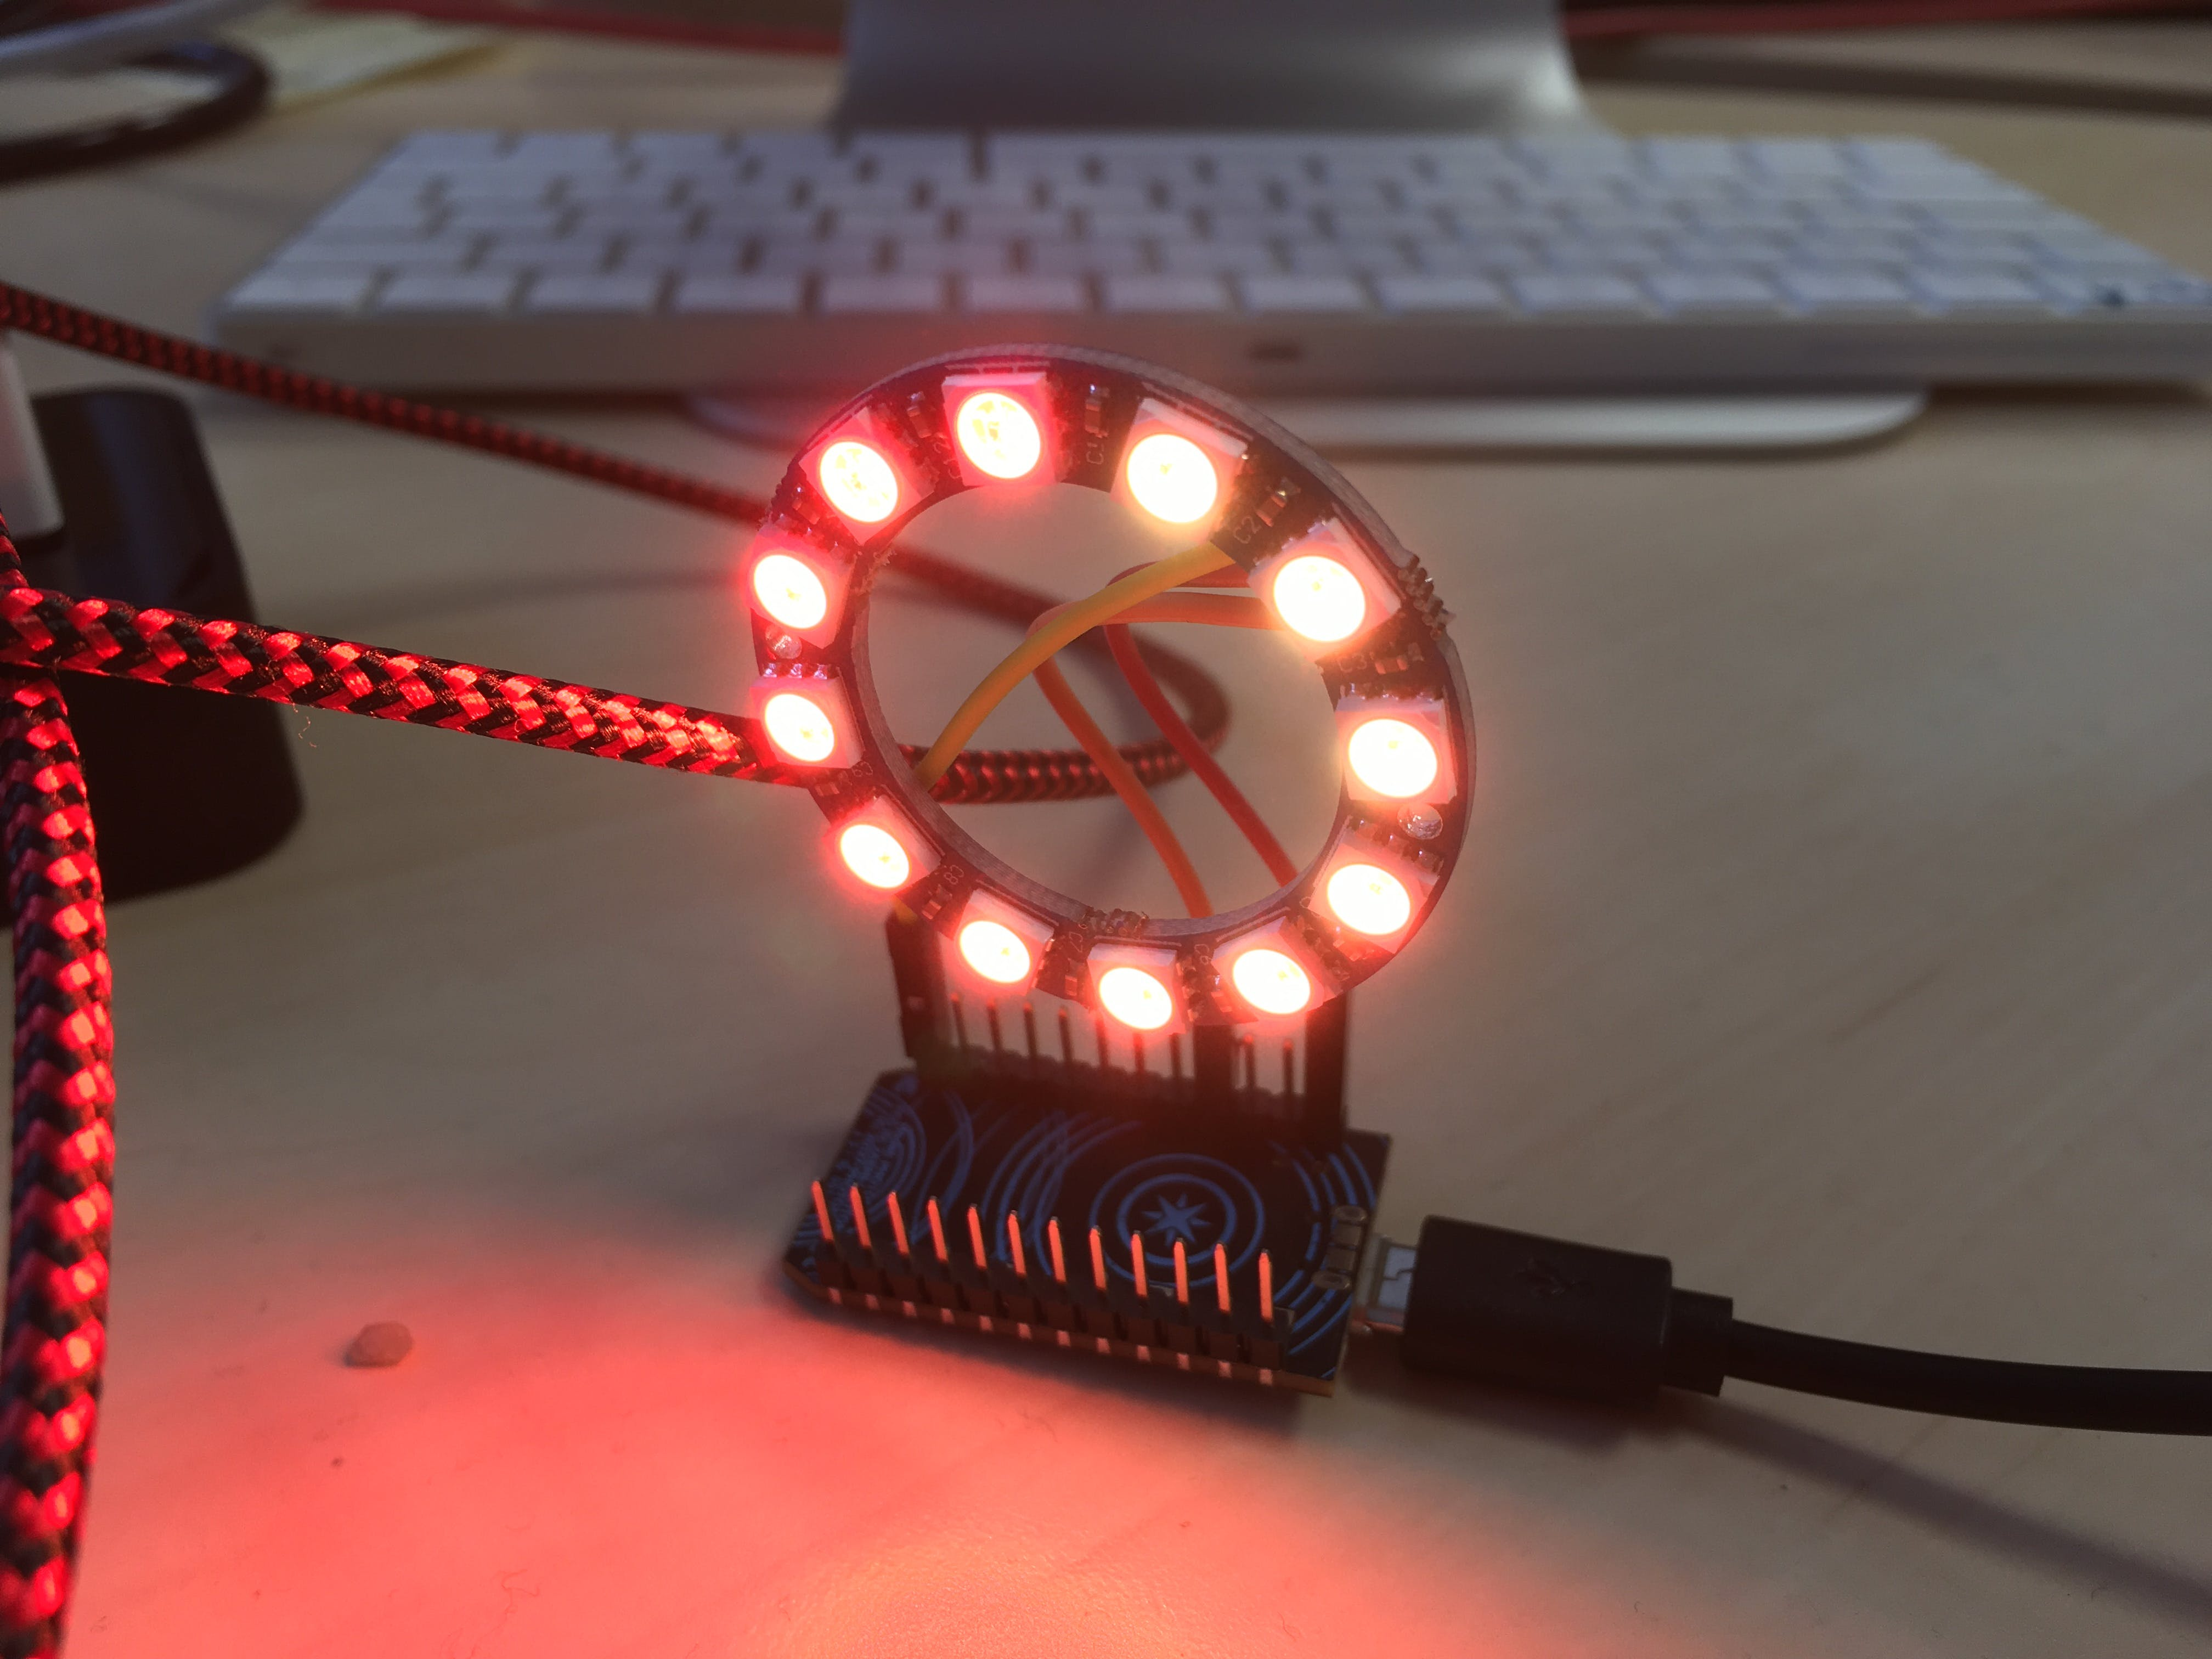 Trying the LED ring that just arrived in the mail